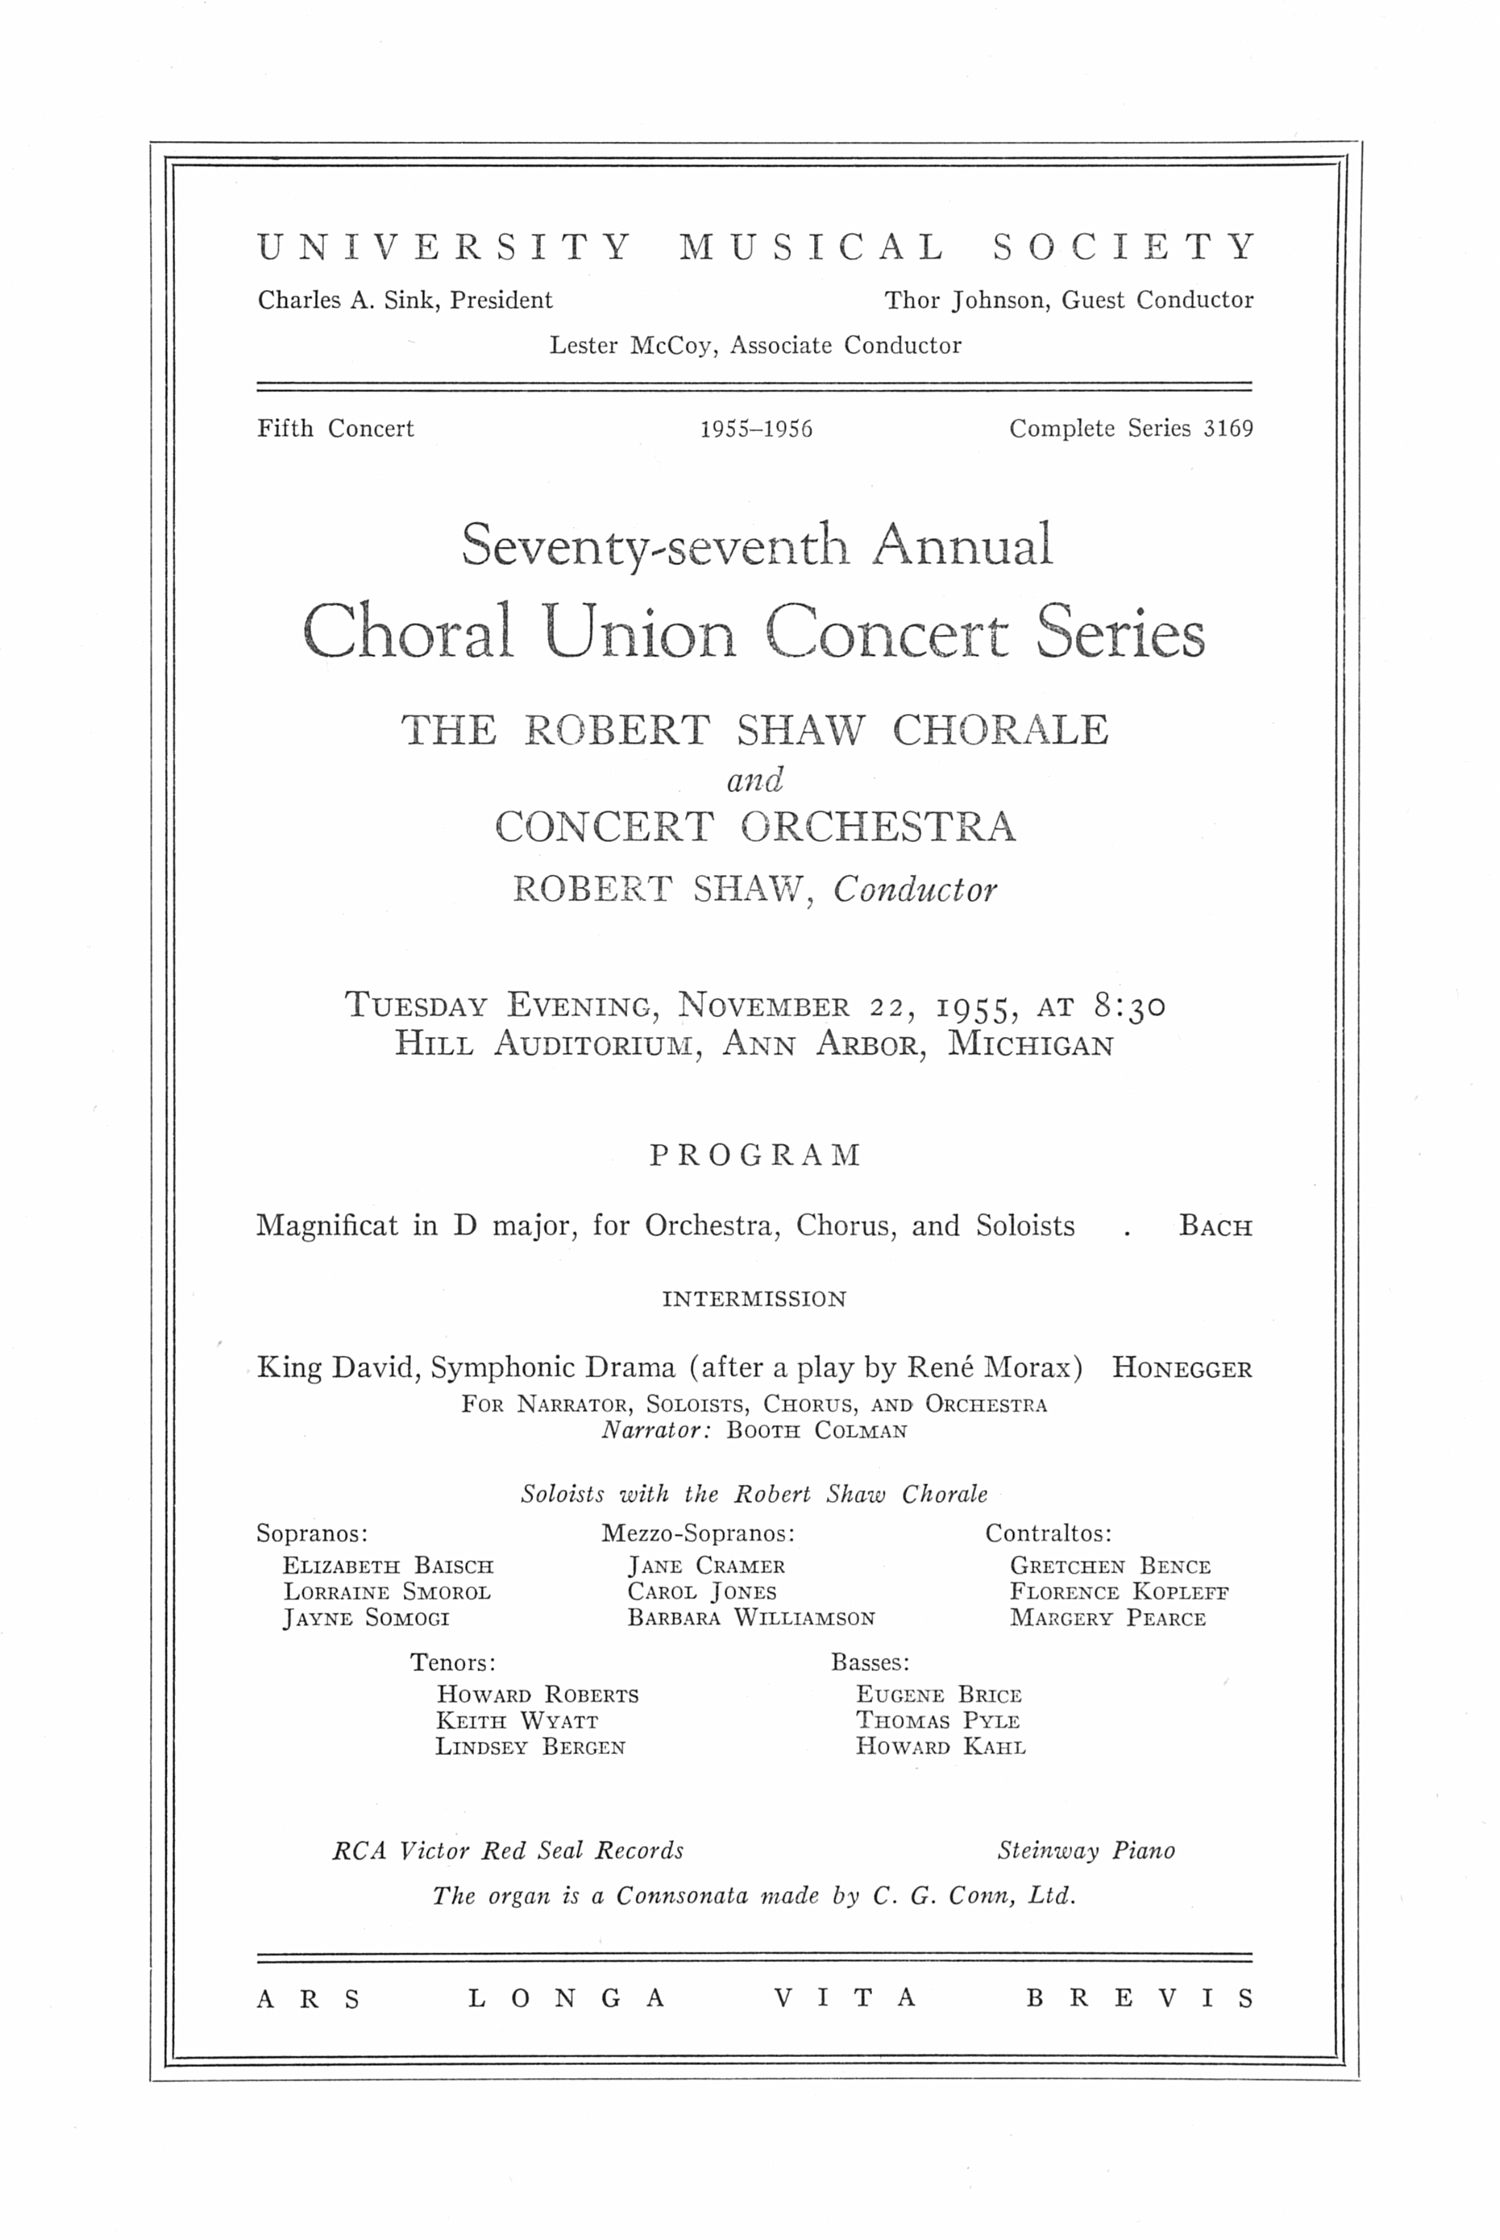 UMS Concert Program, November 22, 1955: Seventy-seventh Annual Choral Union Concert Series -- The Robert Shaw Chorale And Concert Orchestra image